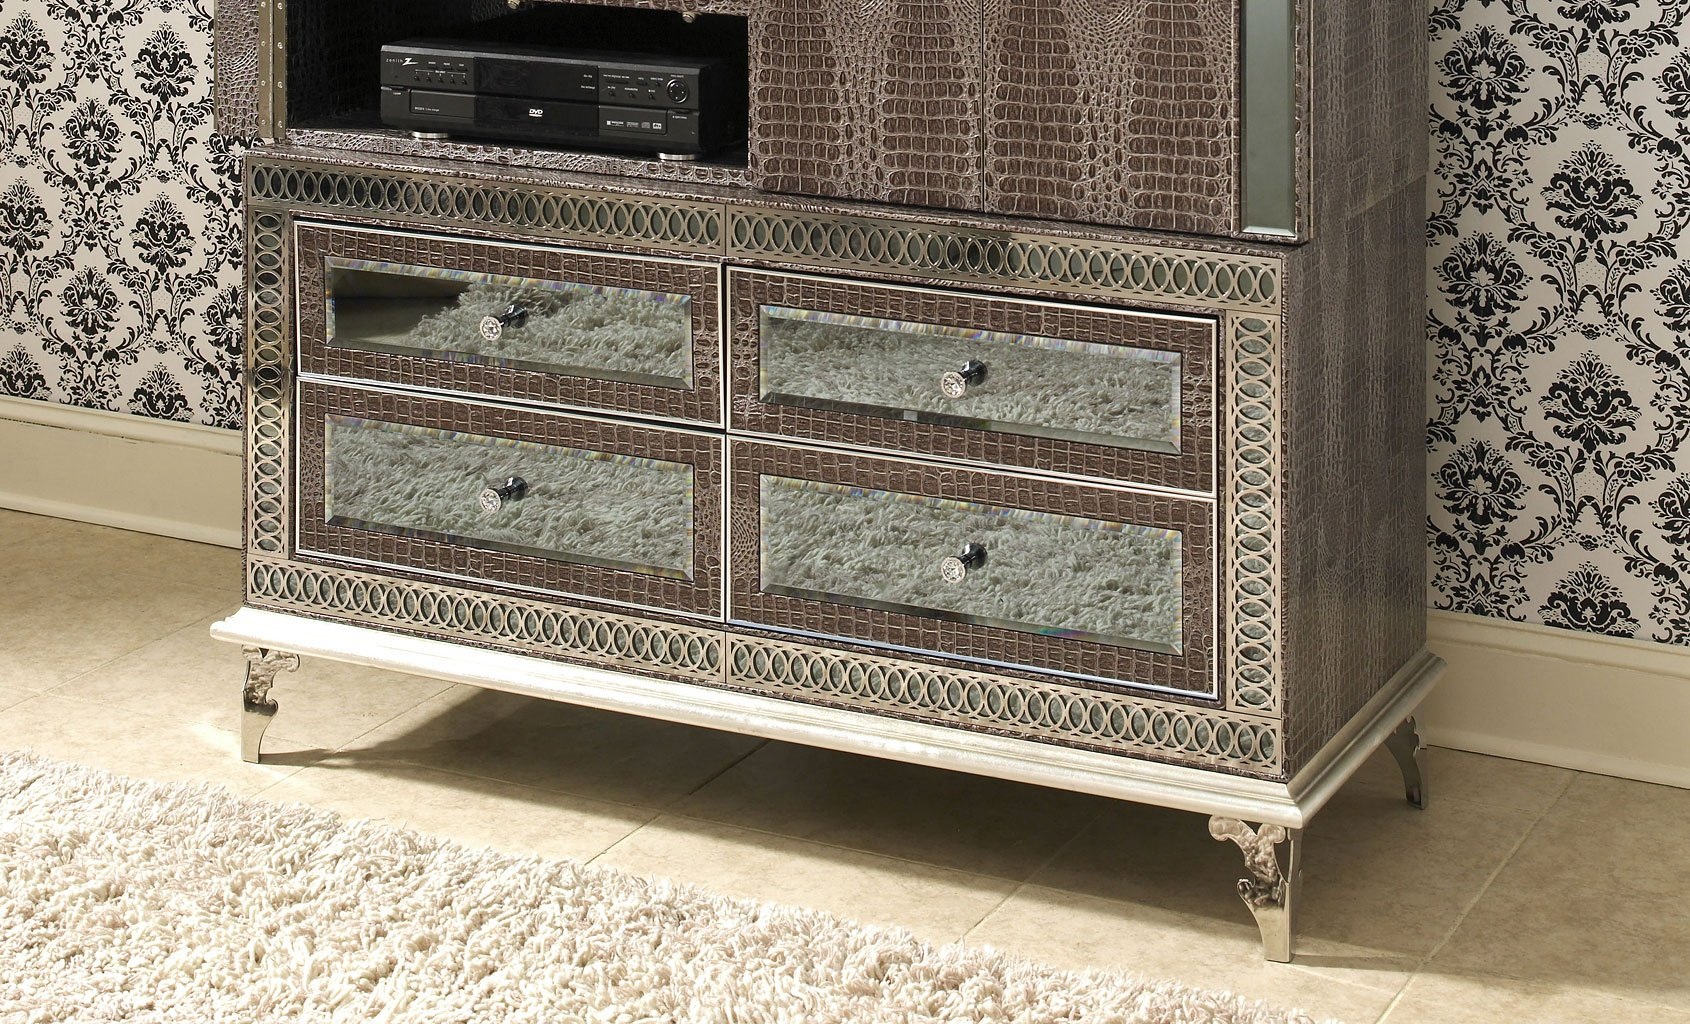 Surprising Hollywood Swank Media Cabinet Base Amazing Gator Home Interior And Landscaping Palasignezvosmurscom